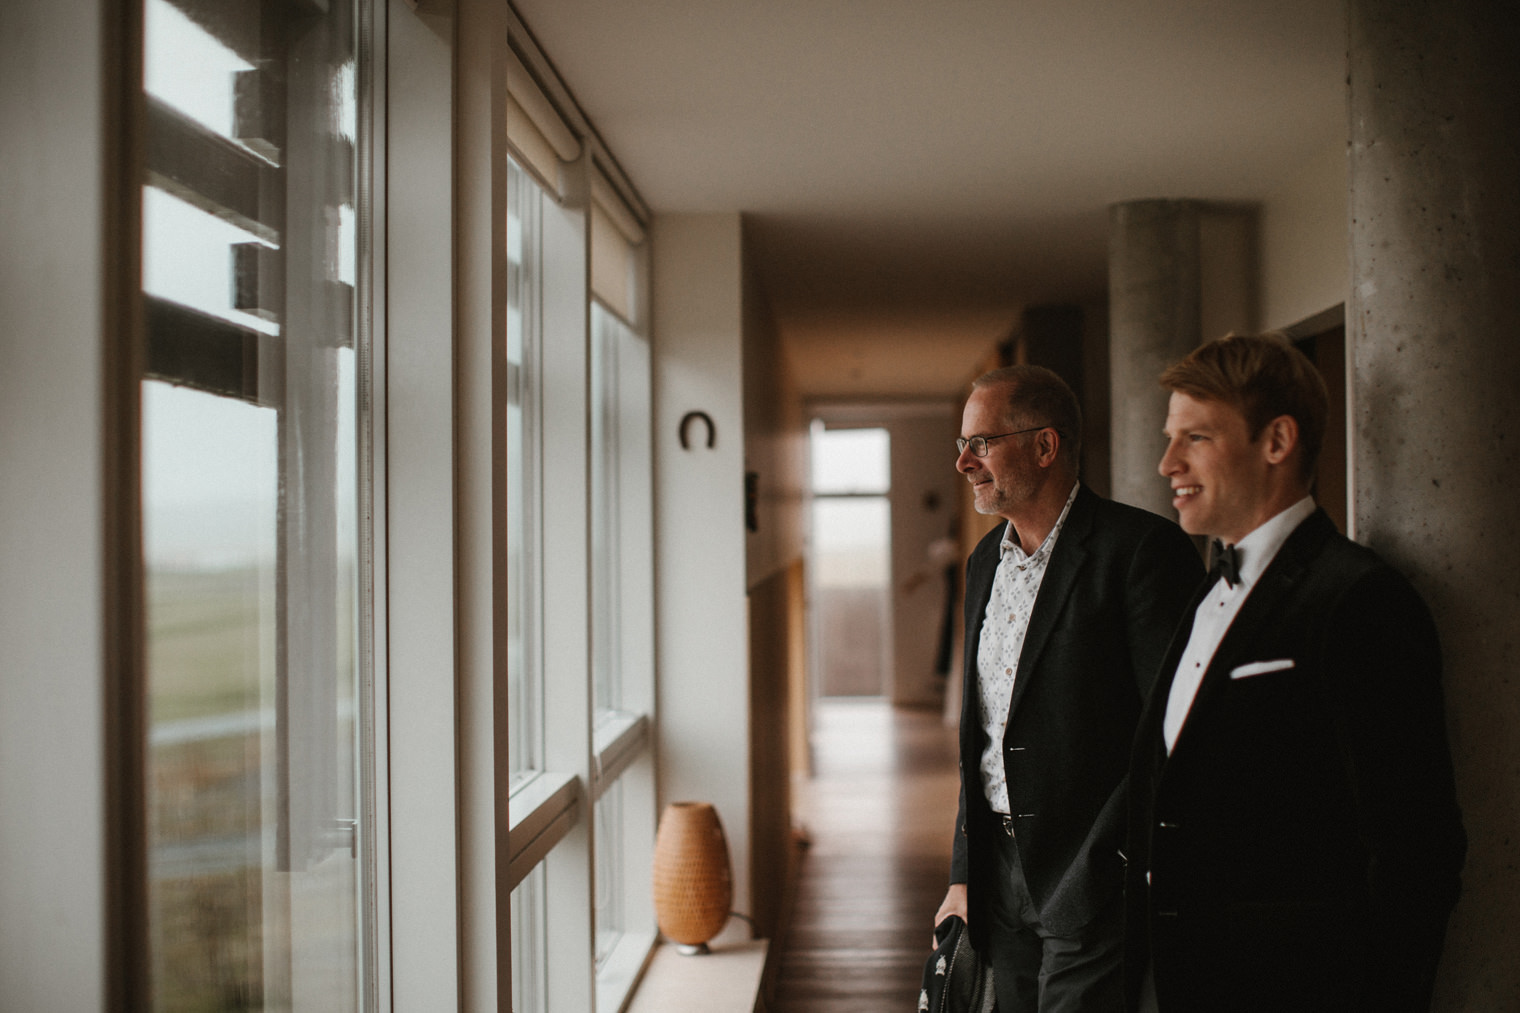 Father and Groom sharing a moment together before Iceland Wedding